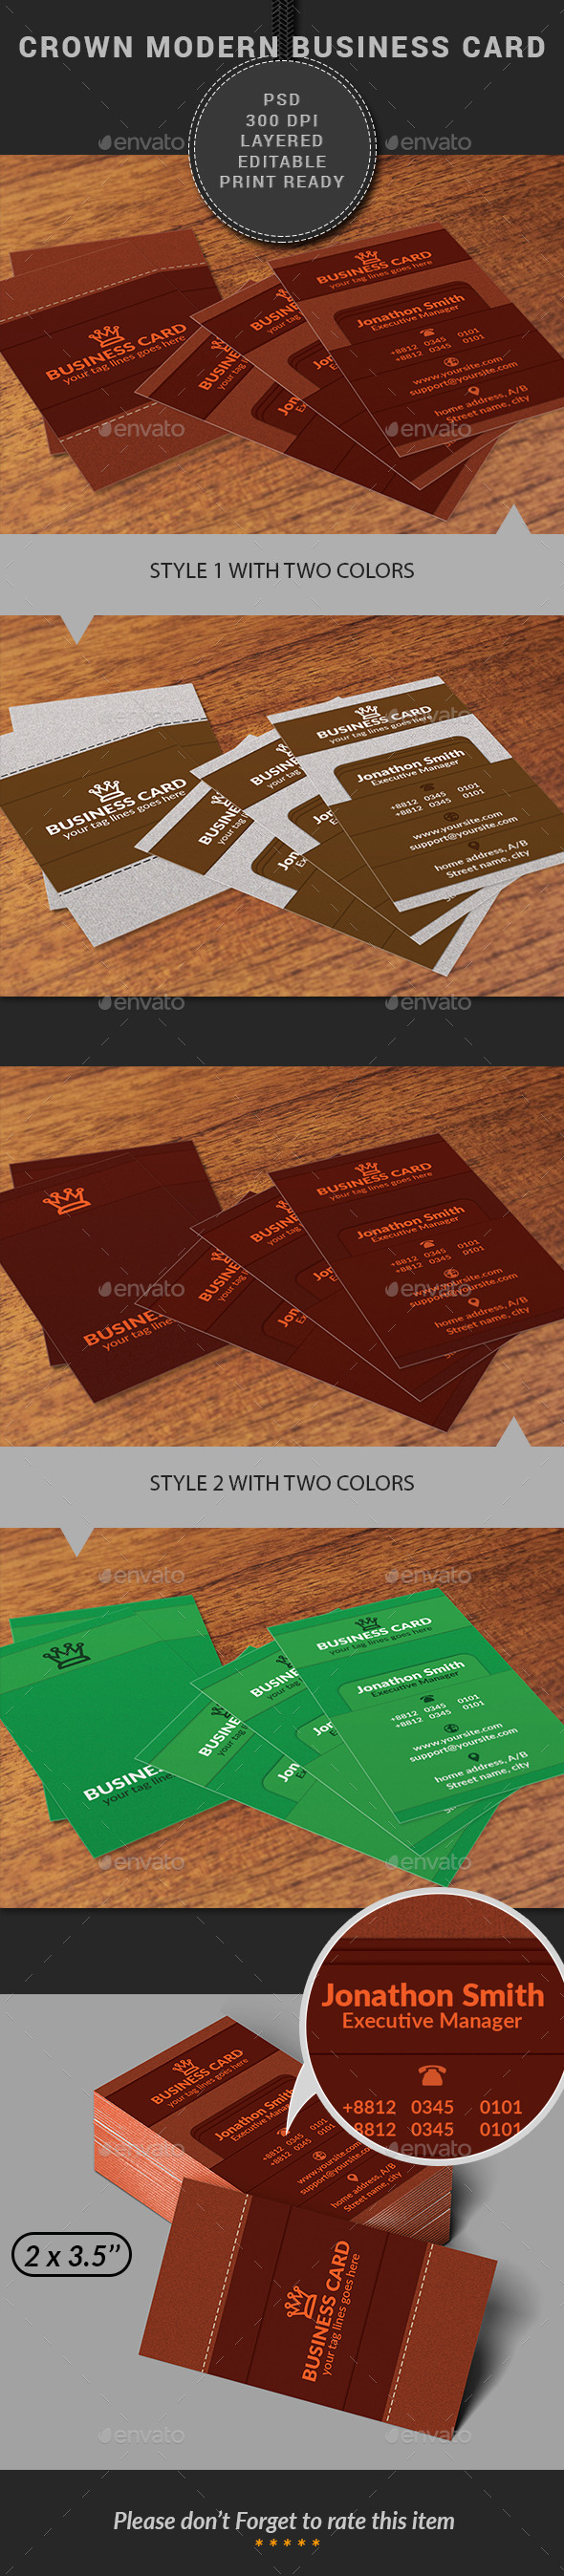 GraphicRiver Crown Modern Business Card 11584103